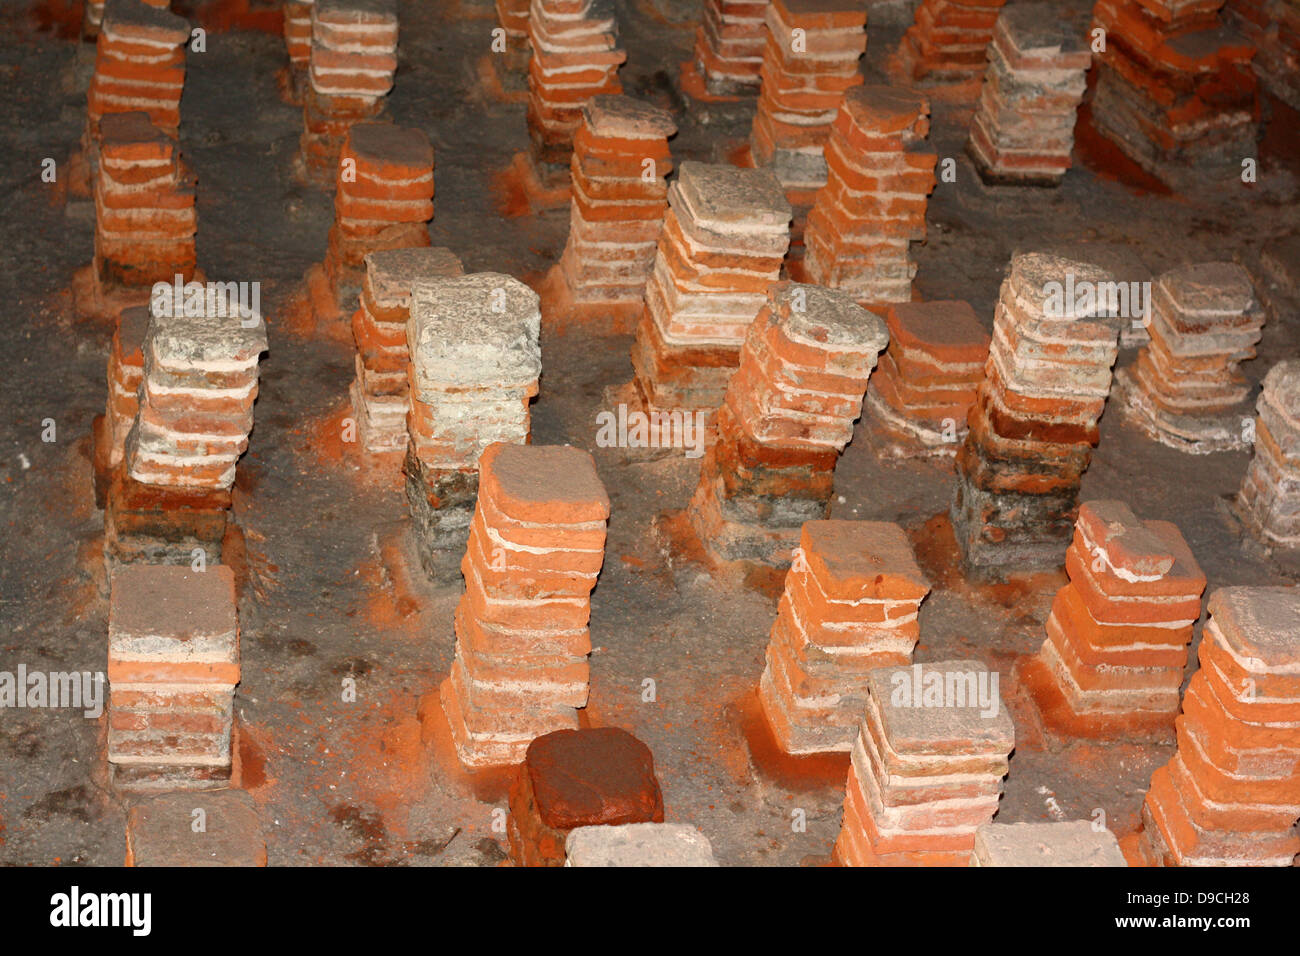 Hypocaust or under floor heating system ran through a series of hypocaust or under floor heating system ran through a series of channels supported by tiles at the roman baths at bath dailygadgetfo Image collections